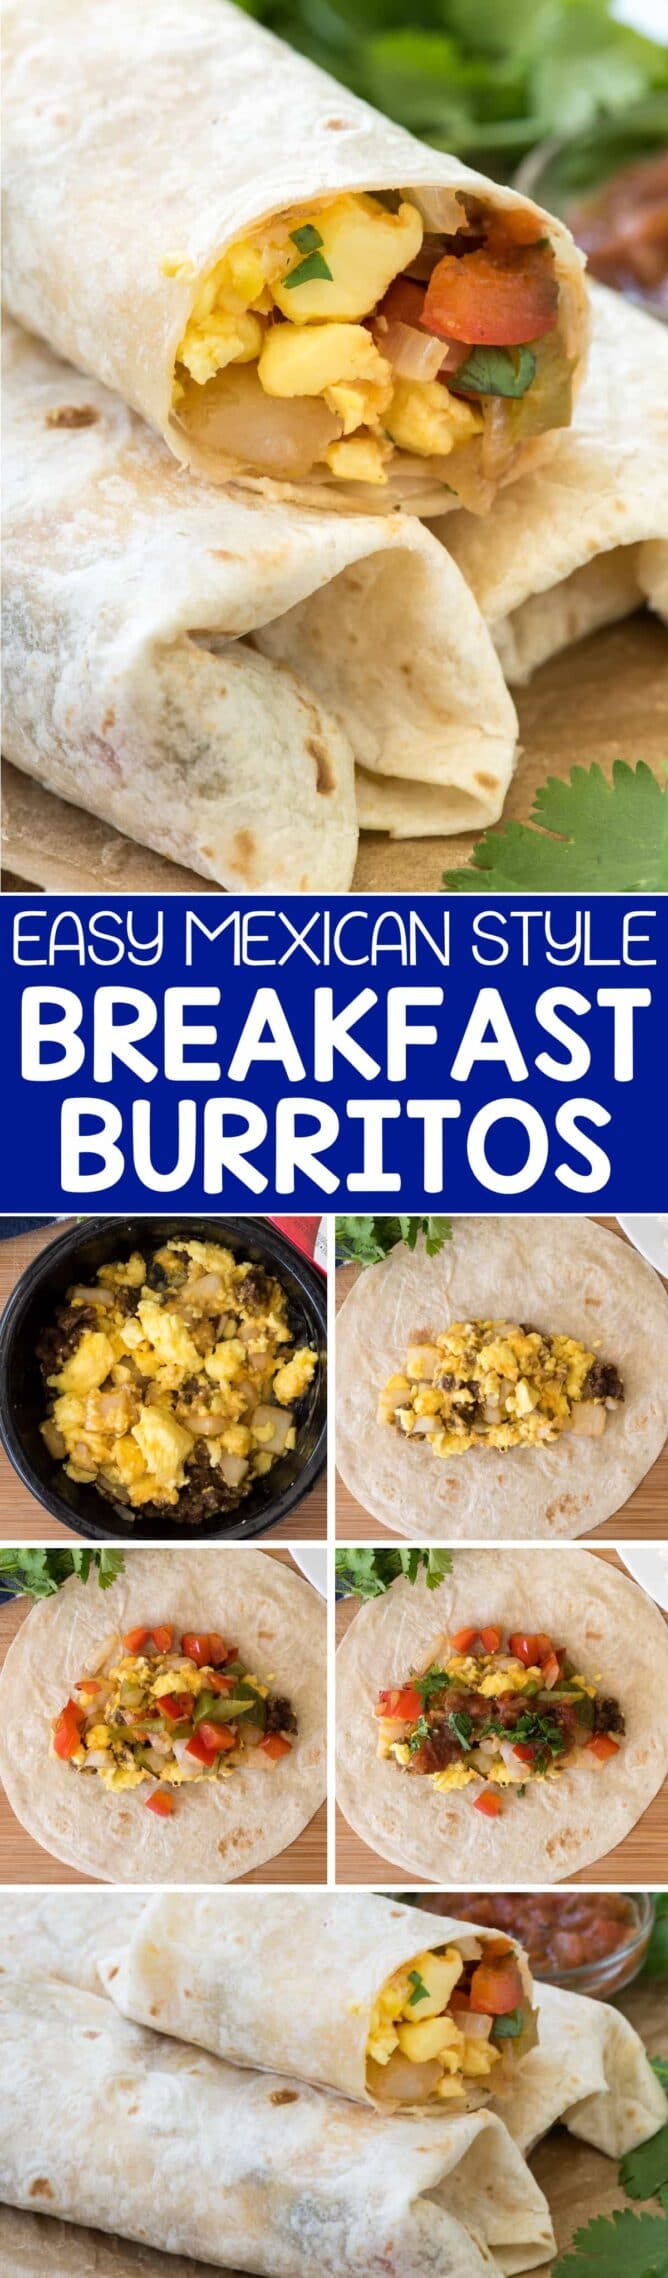 Easy Mexican Breakfast Burritos collage photo! These semi-homemade breakfast burritos start with a frozen breakfast bowl and have added vegetables and Mexican flavors. These are the PERFECT breakfast for on the go!